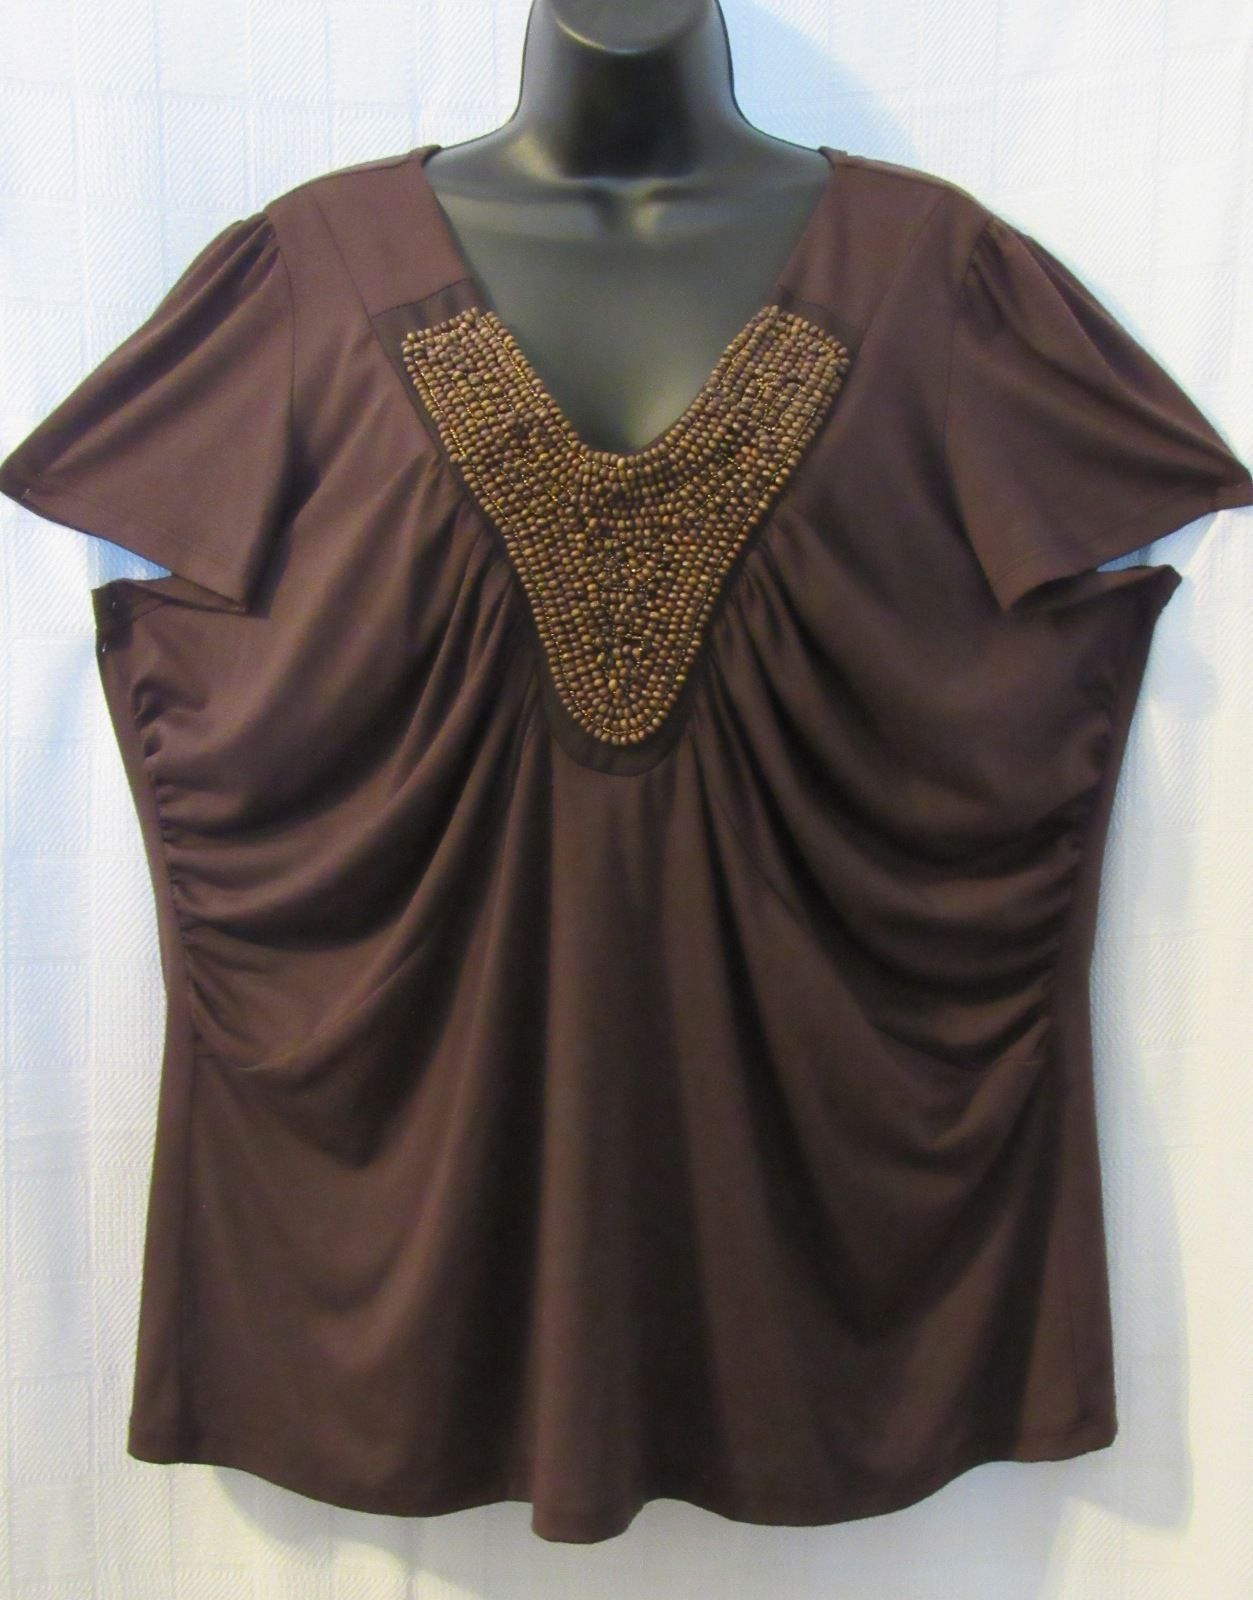 Moa Moa Woman Brown Embellished Beaded Knit Top Cap Sleeve Cotton Blend Plus 1X